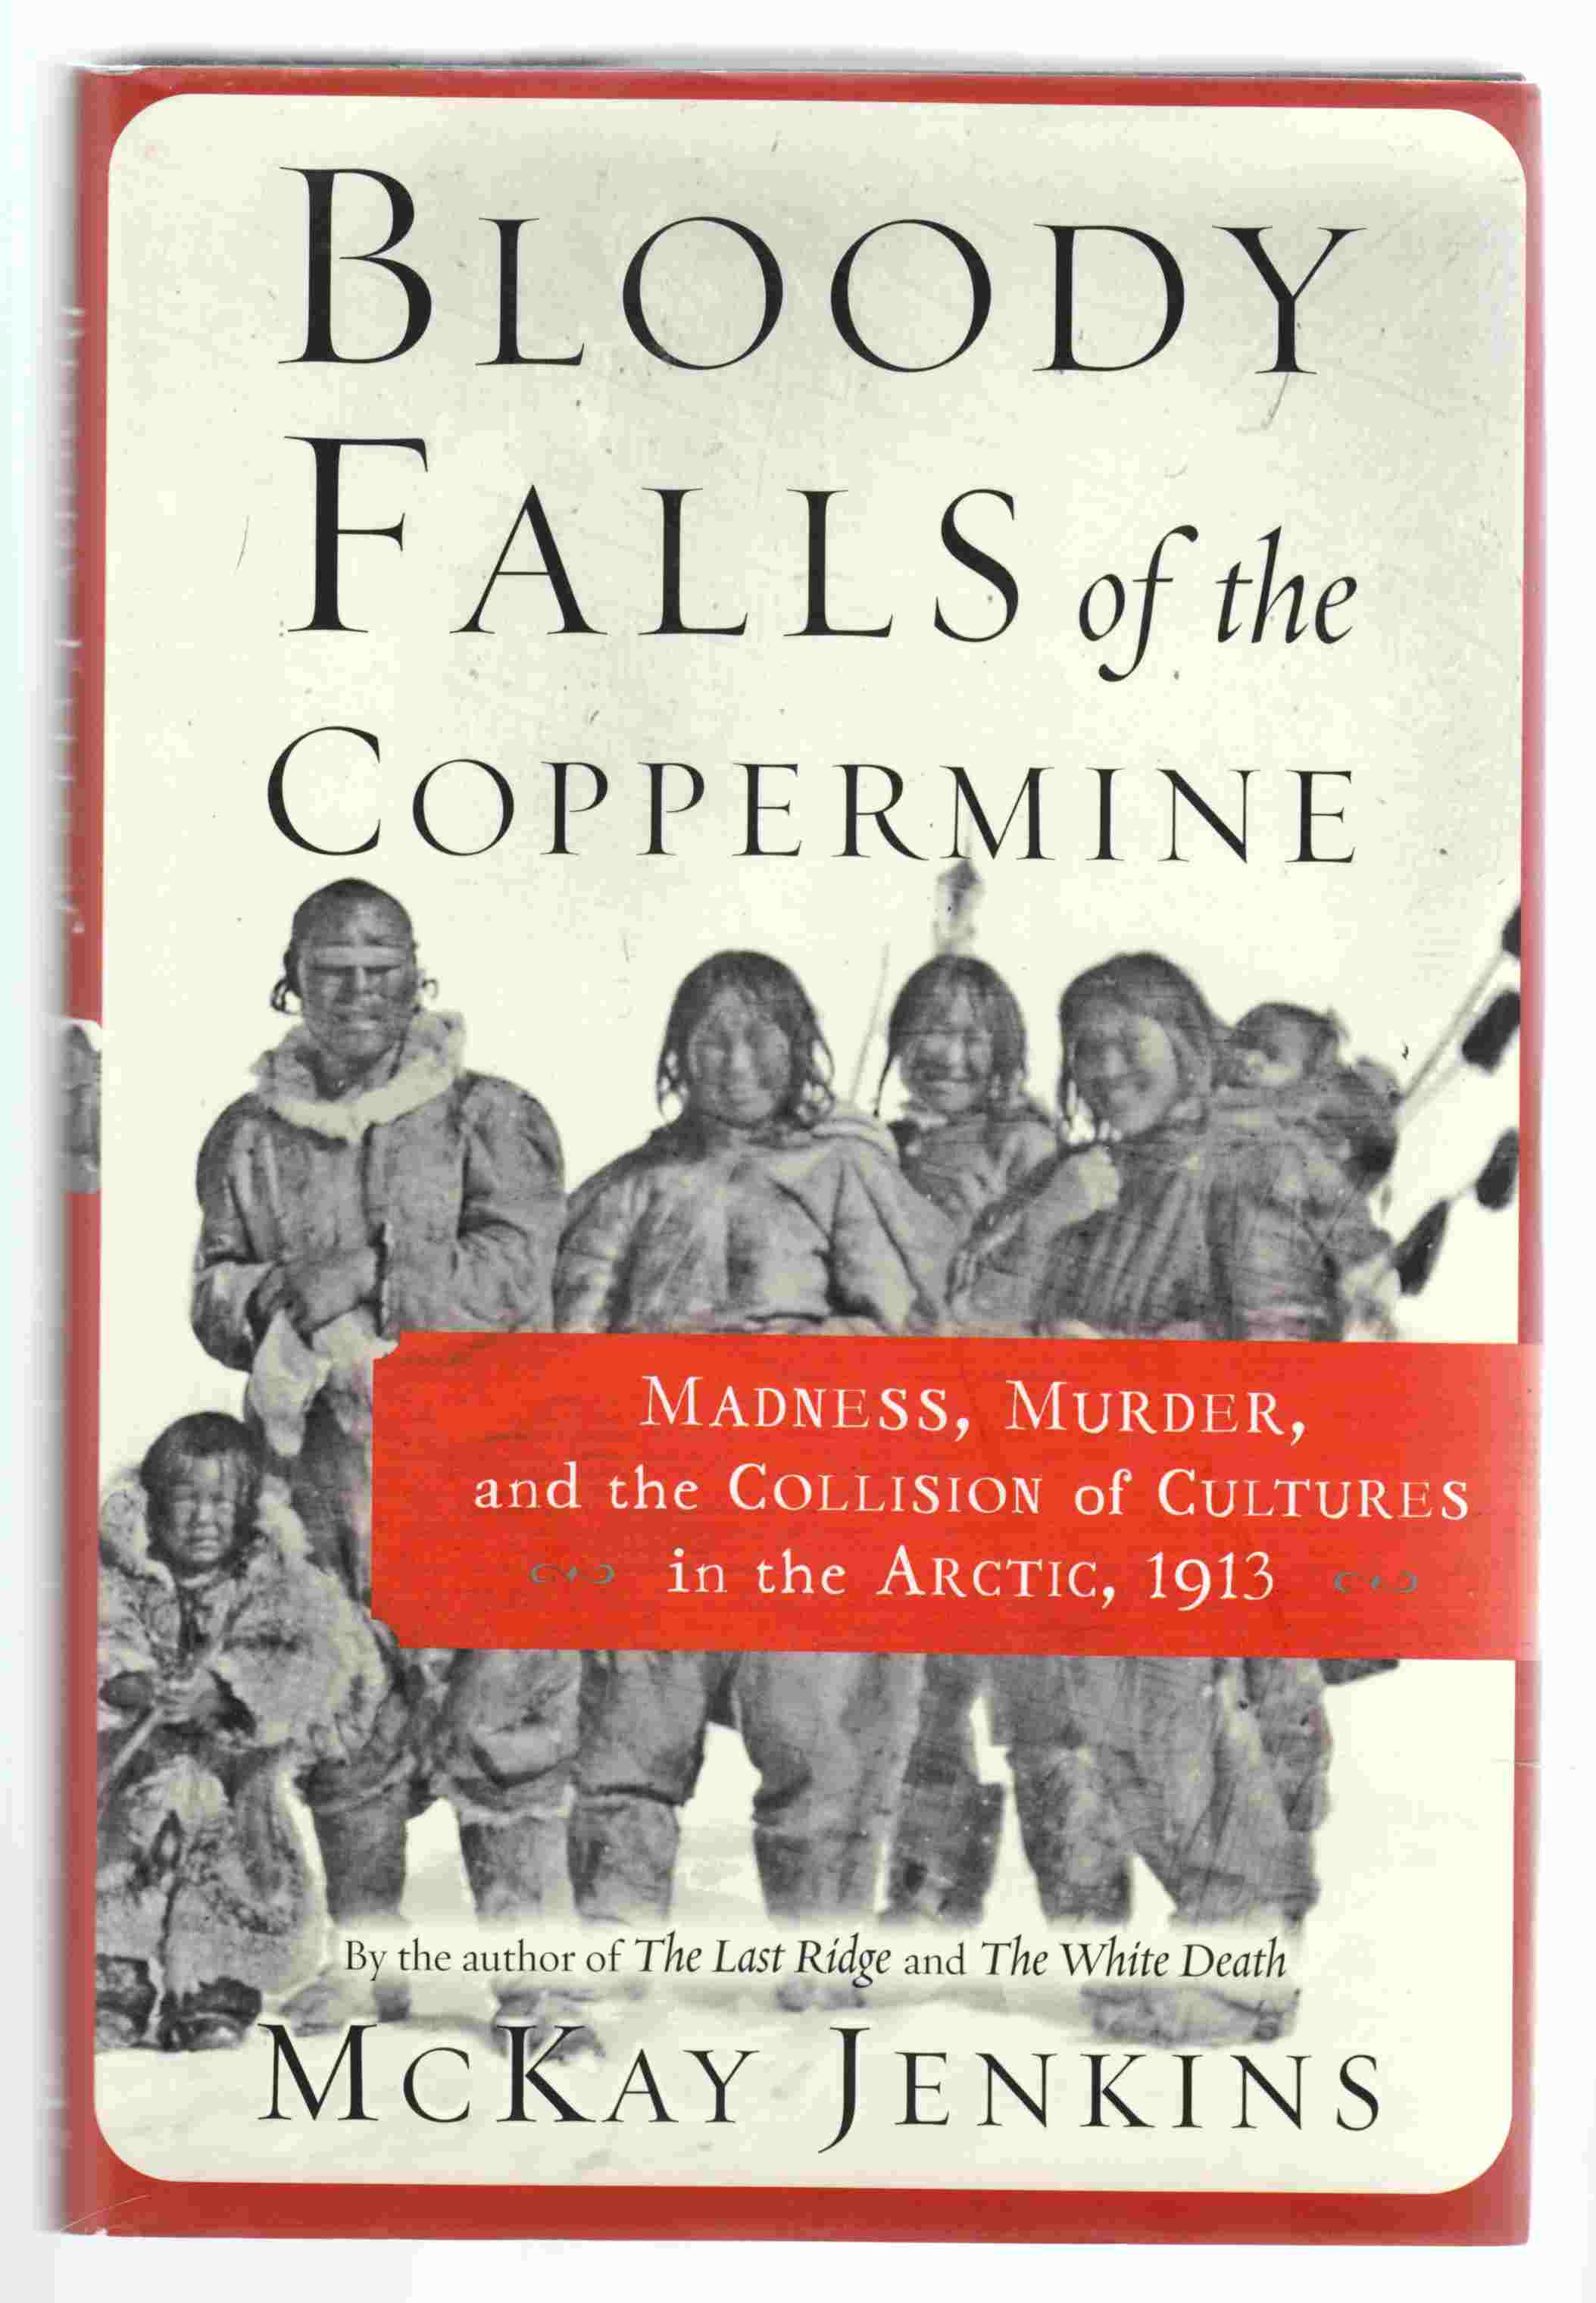 Image for Bloody Falls of the Coppermine Madness, Murder, and the Collision of Cultures in the Arctic, 1913